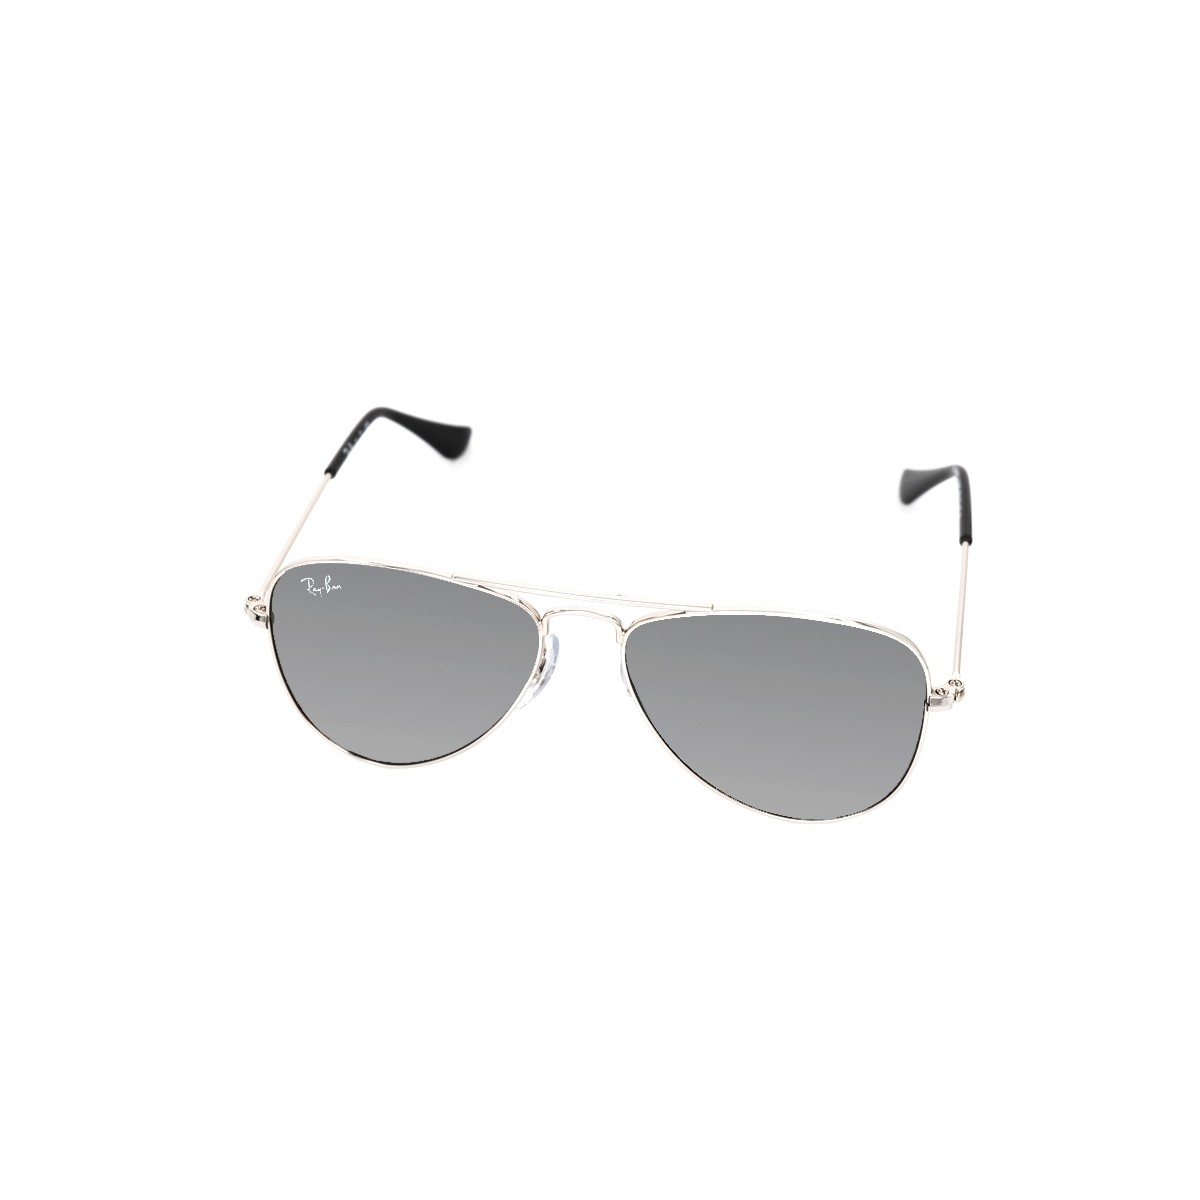 Ray Ban Junior 9506 212/6G, 56,00 €, Occhiali Ray Ban Junior Argento a forma Goccia aviator